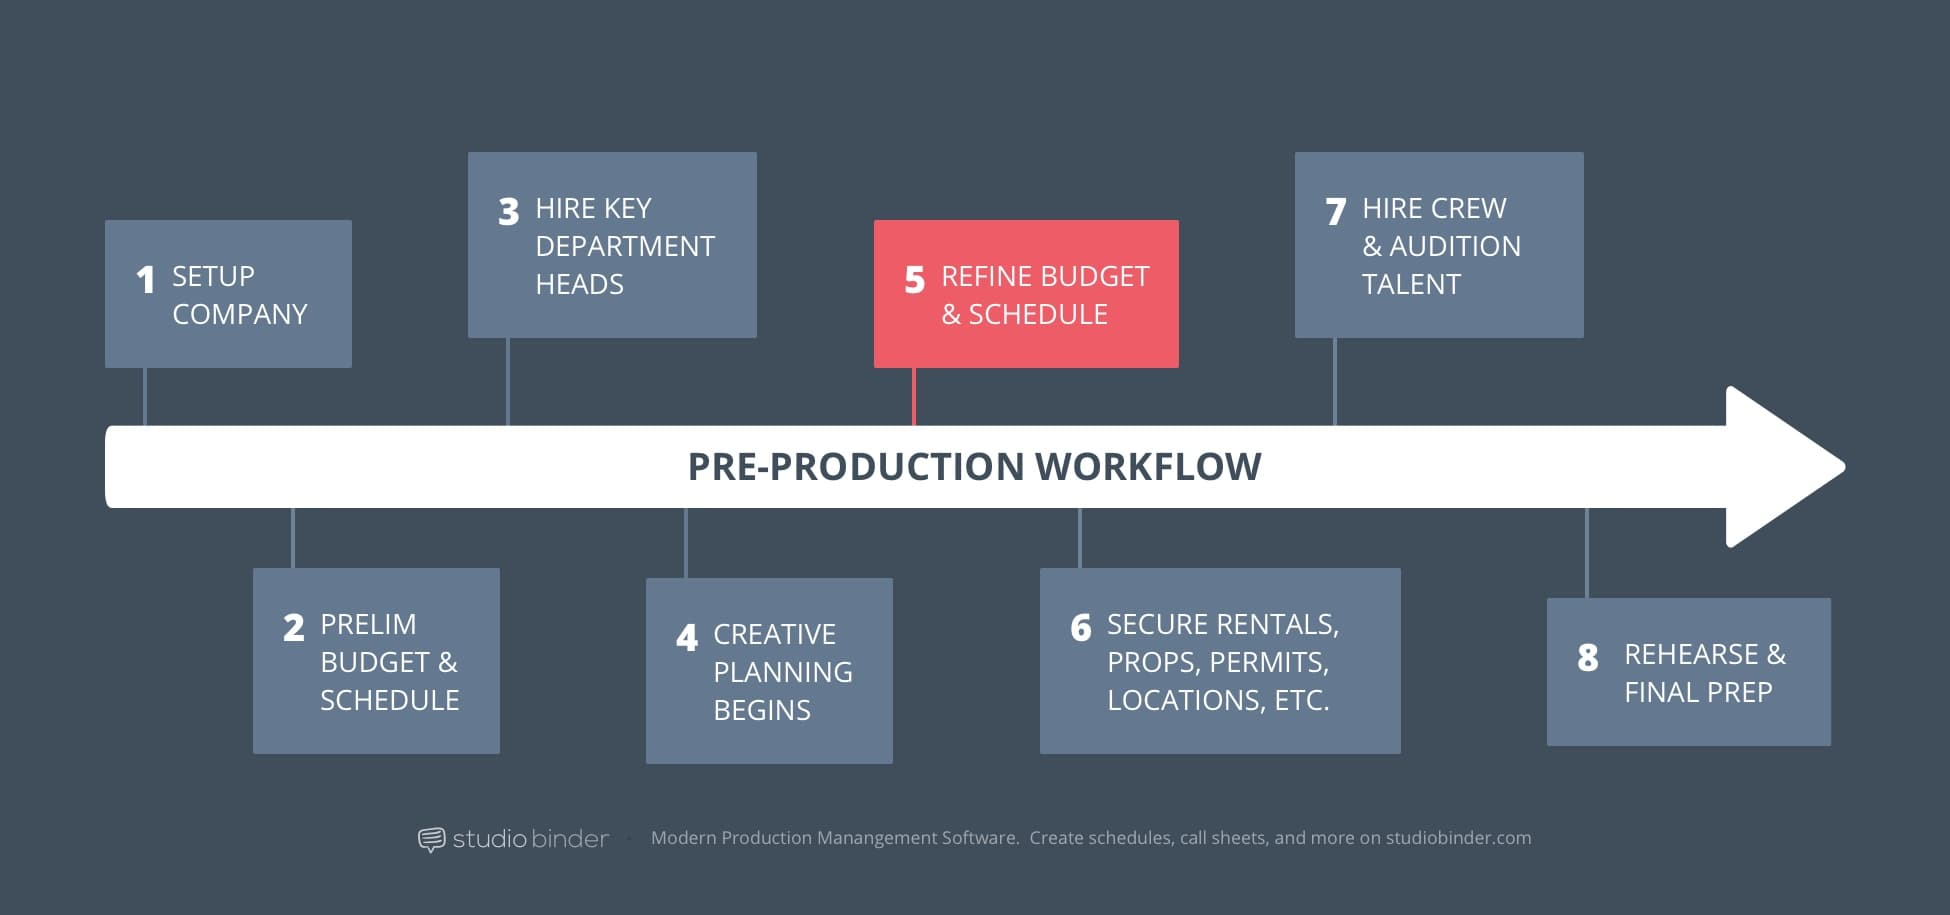 5 - StudioBinder Pre-Production Workflow - Refine Budget and Schedule